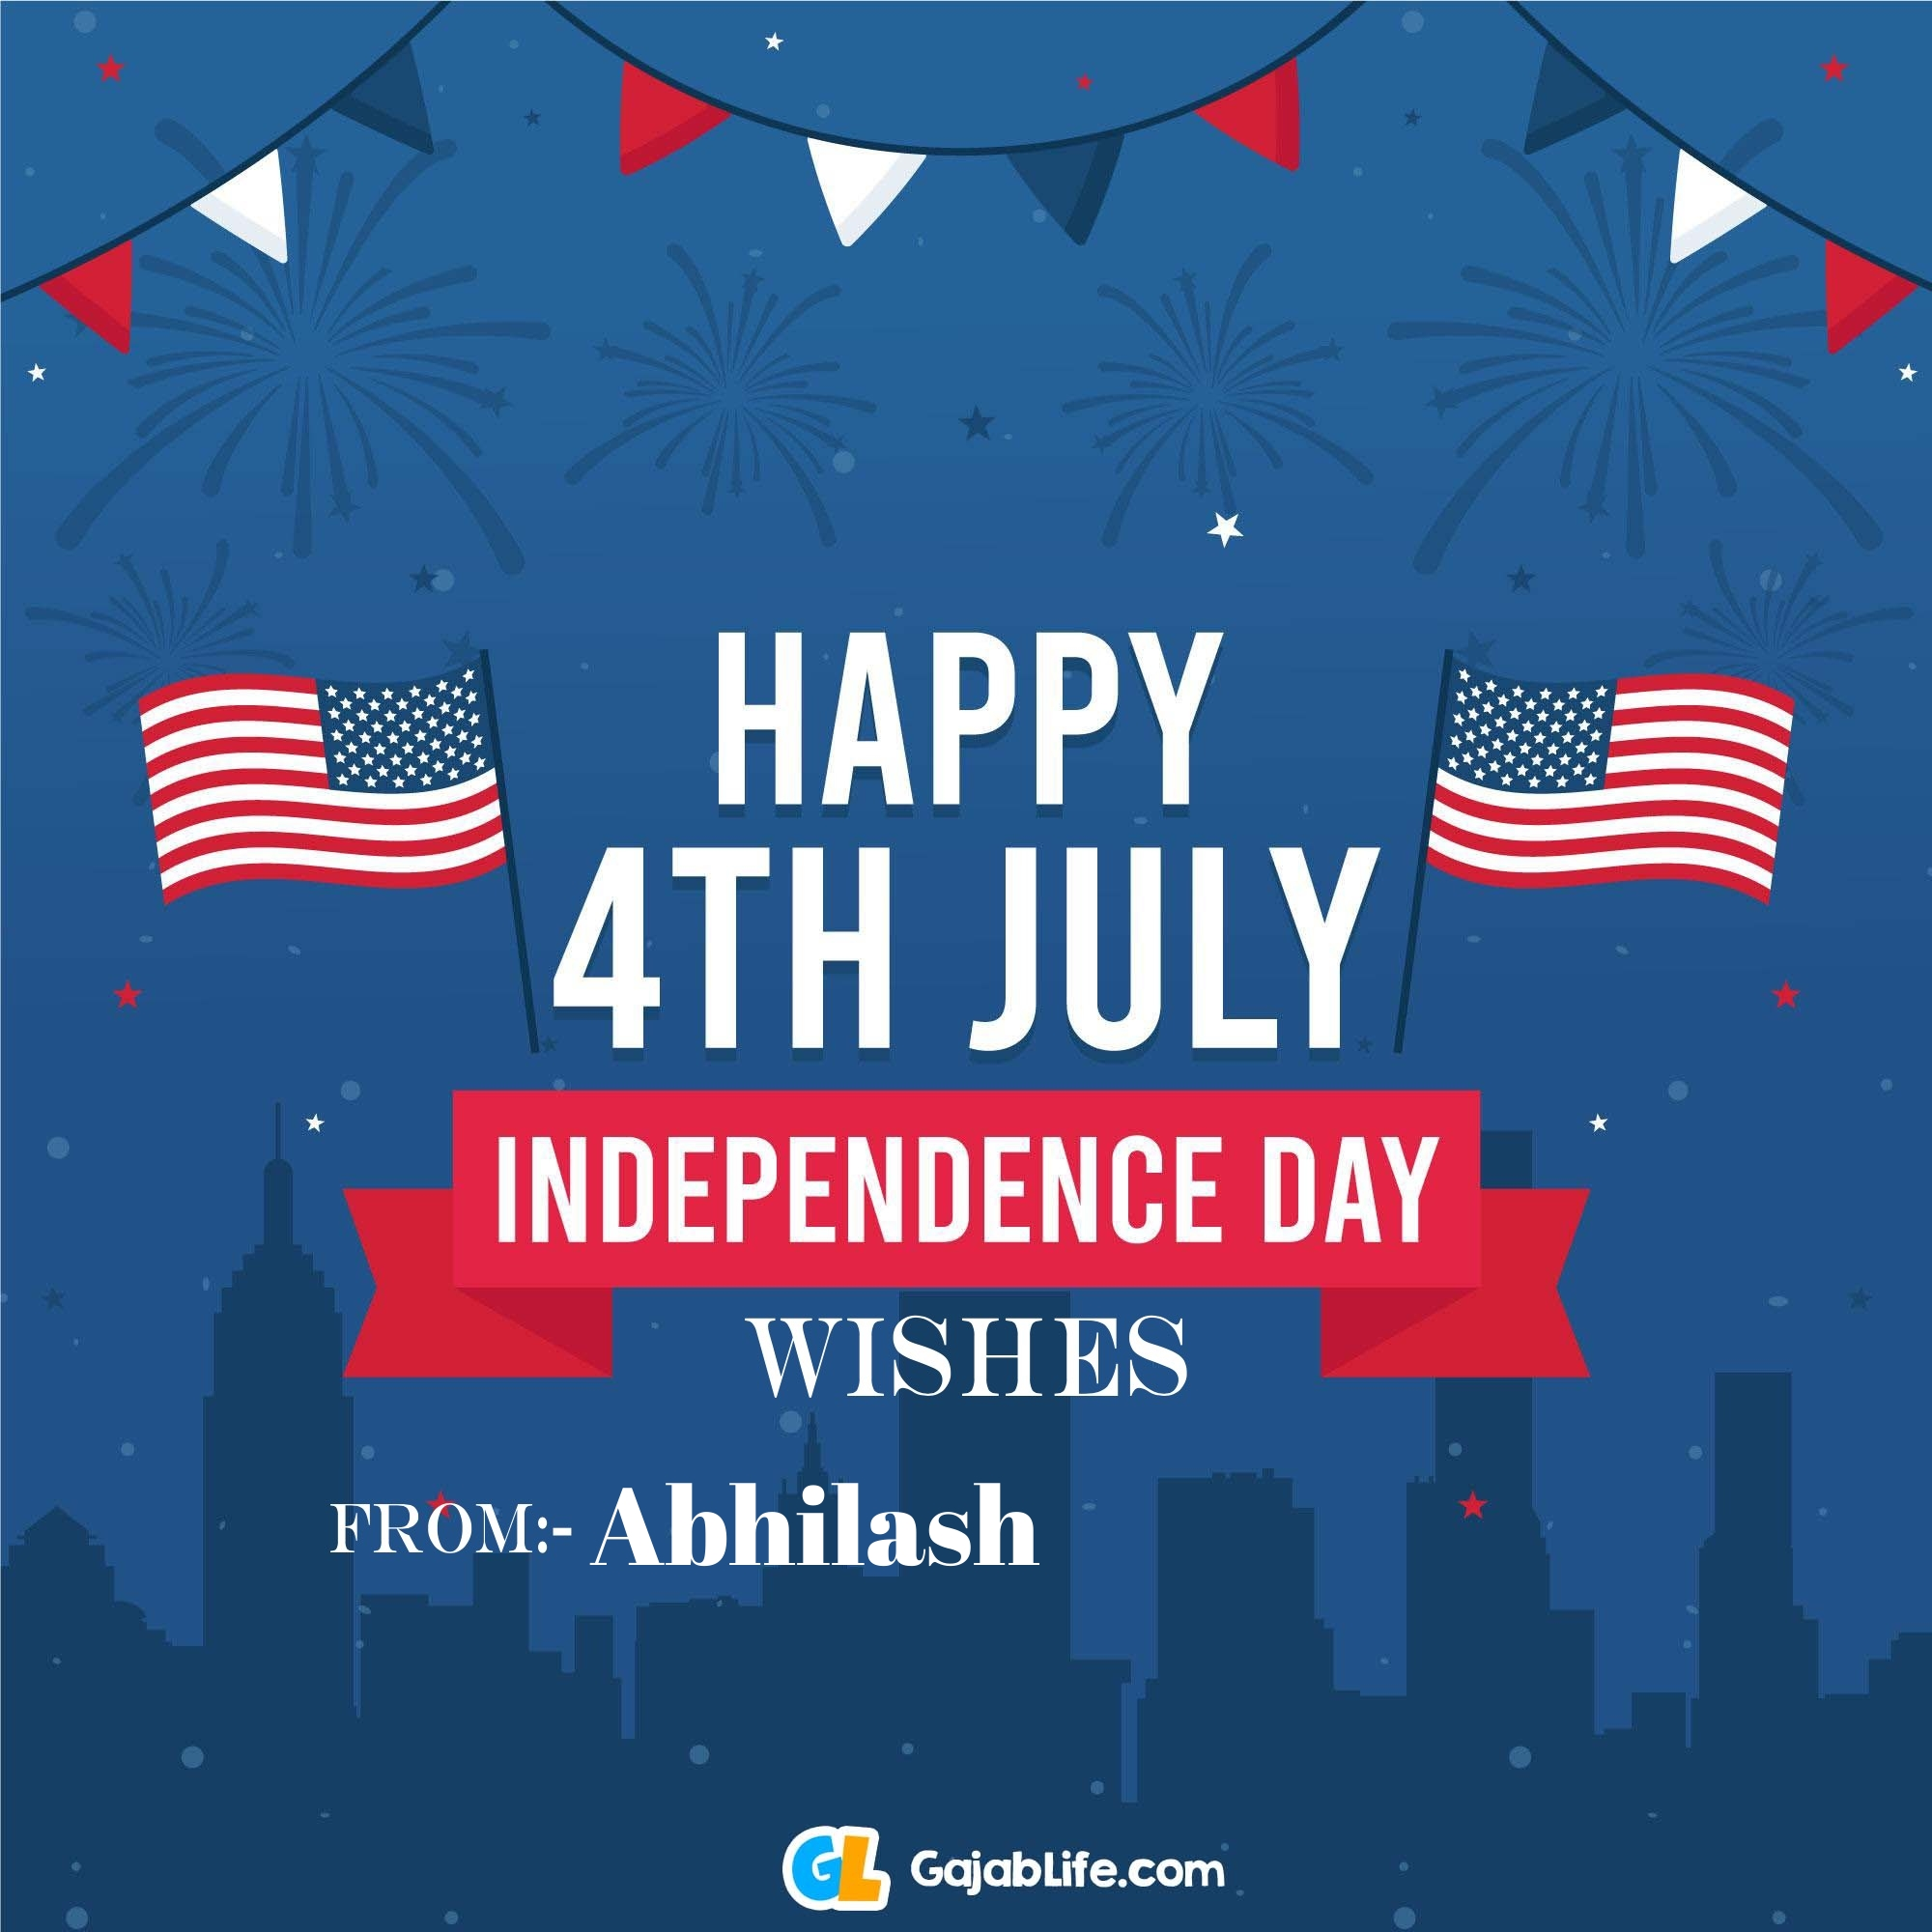 Abhilash happy independence day united states of america images